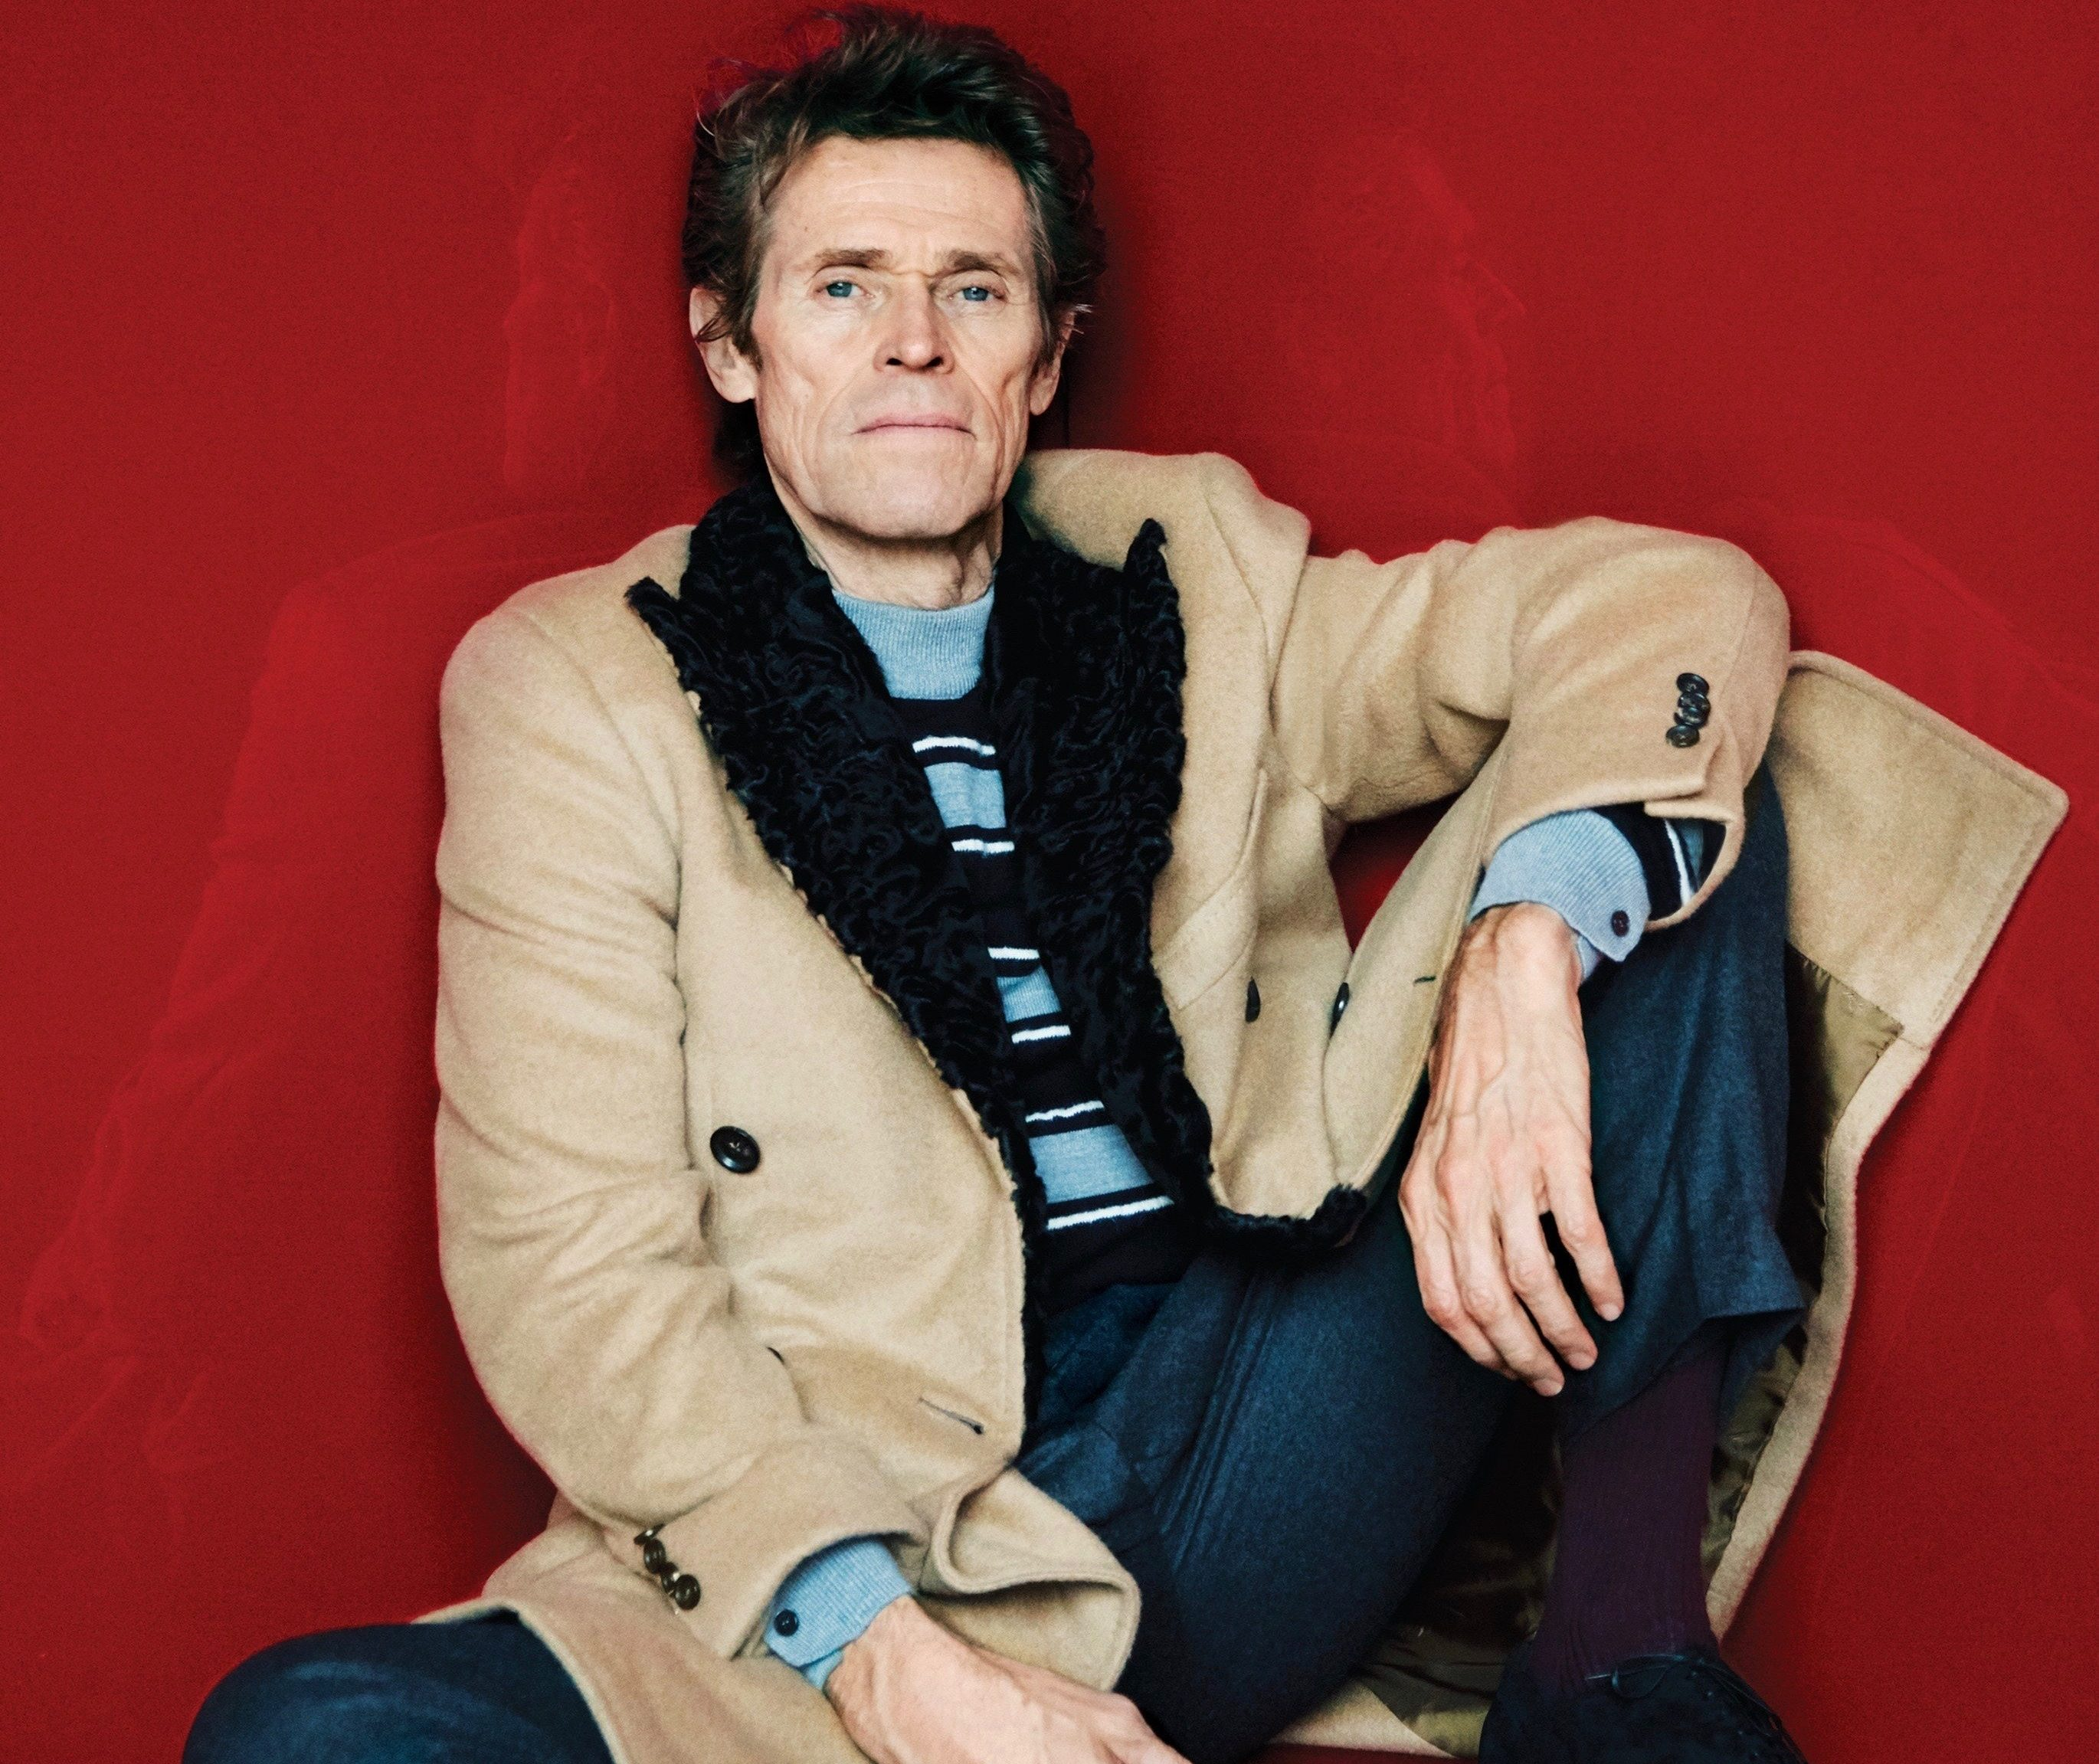 willem dafoe gq style 8 1 1 scaled e1602688163679 20 Things You Never Knew About Willem Dafoe